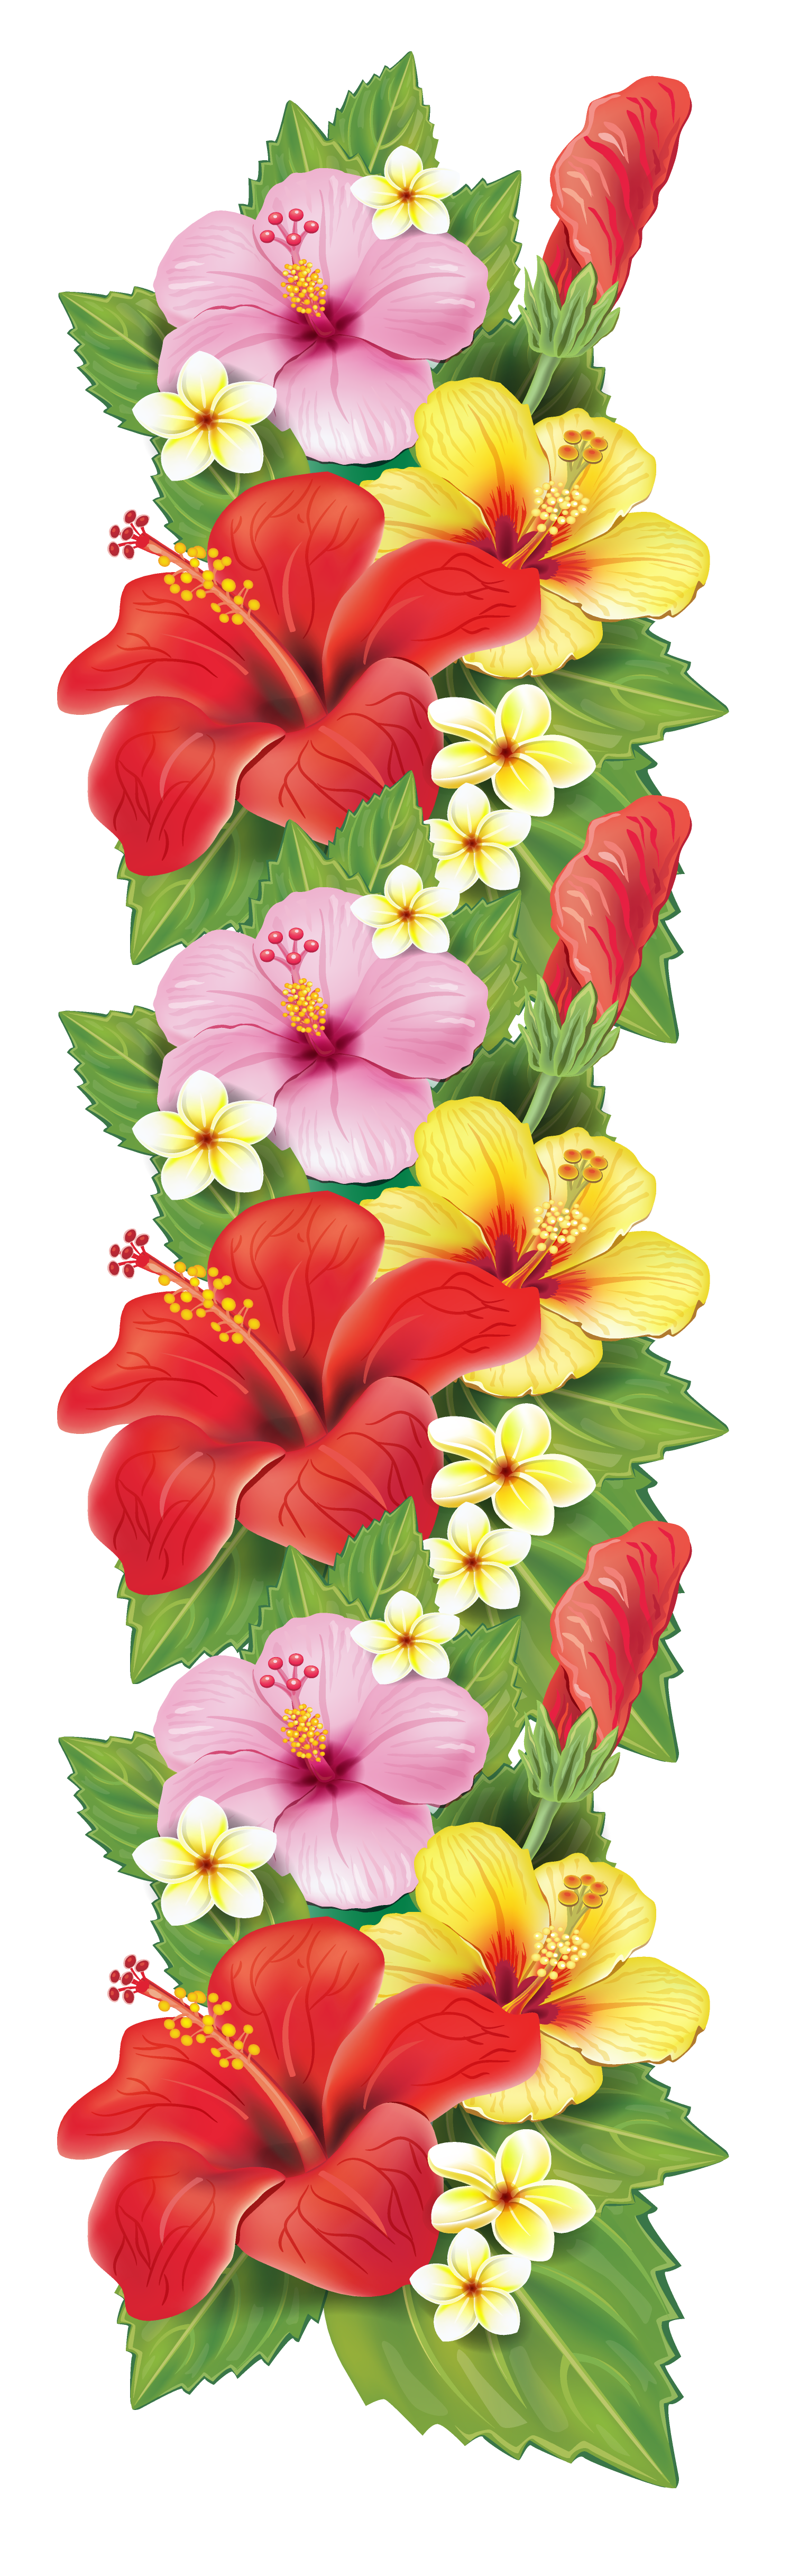 Moana clipart exotic flower. Caribbean decoration pencil and